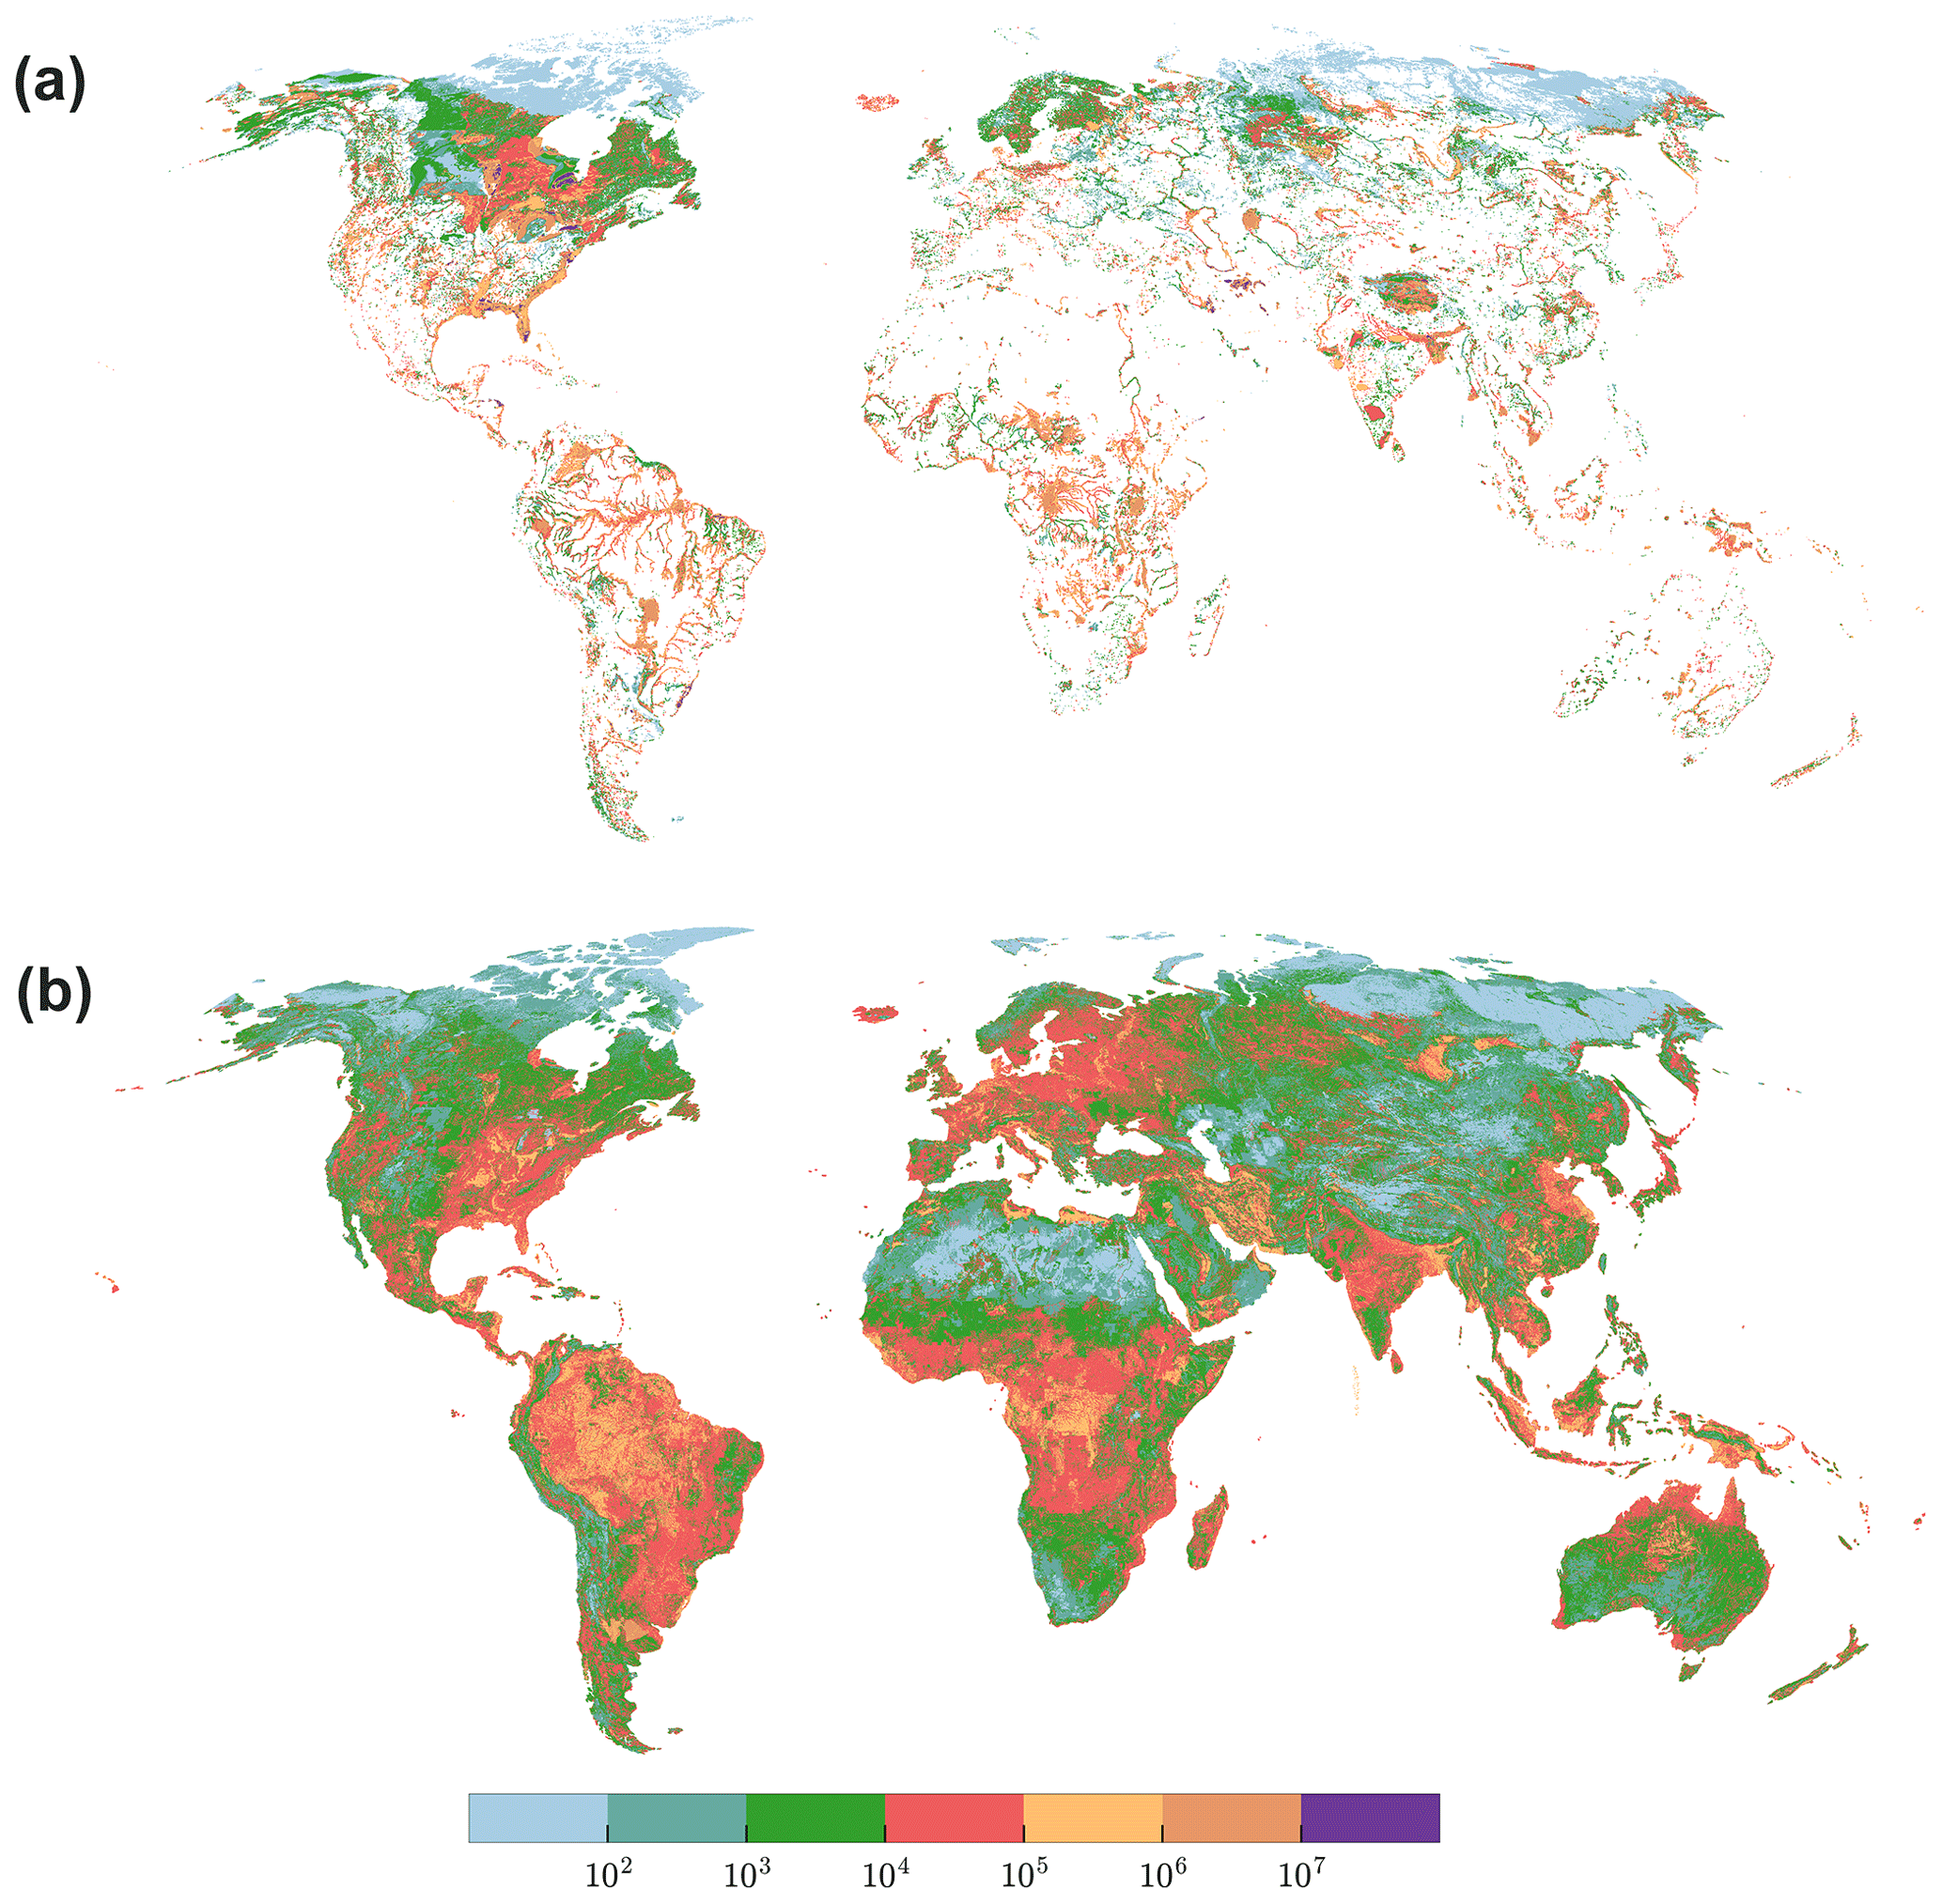 GMD - Challenges in developing a global gradient-based groundwater